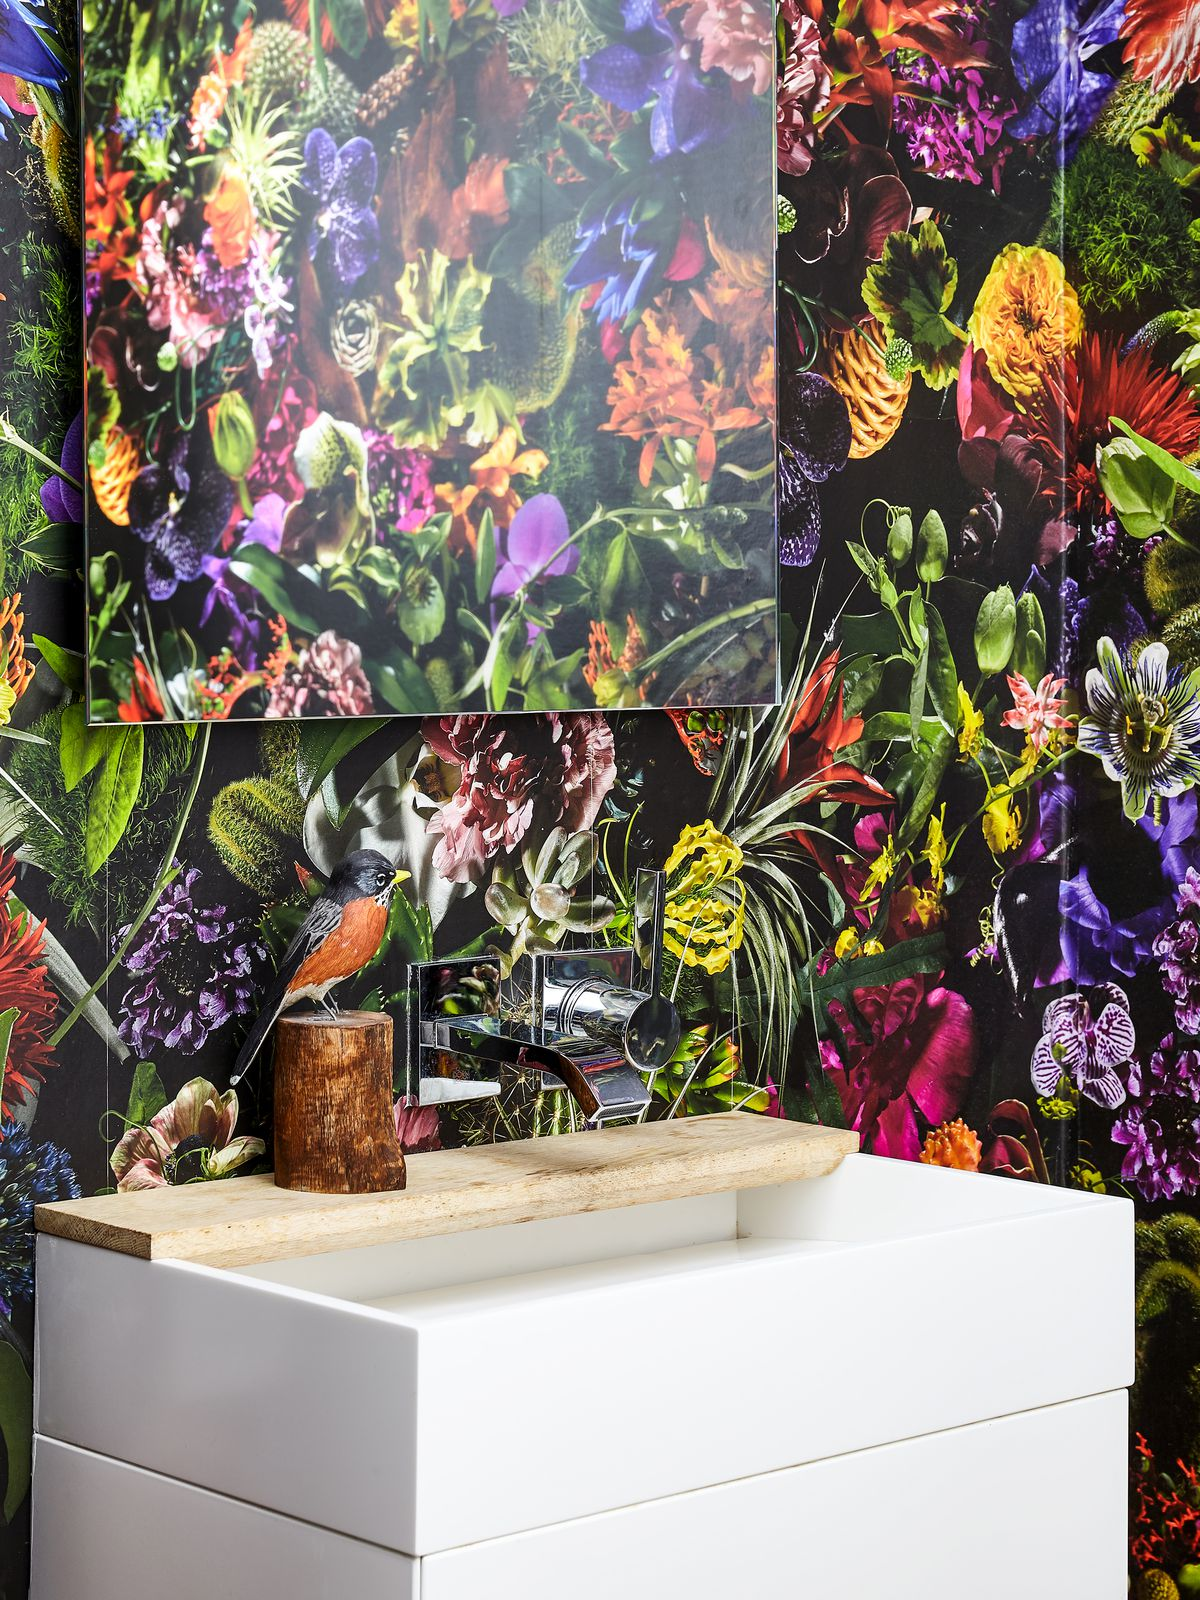 Ultra-busy dark-grounded floral wallpaper on a bathroom wall behind the mirror and sink. Photograph.